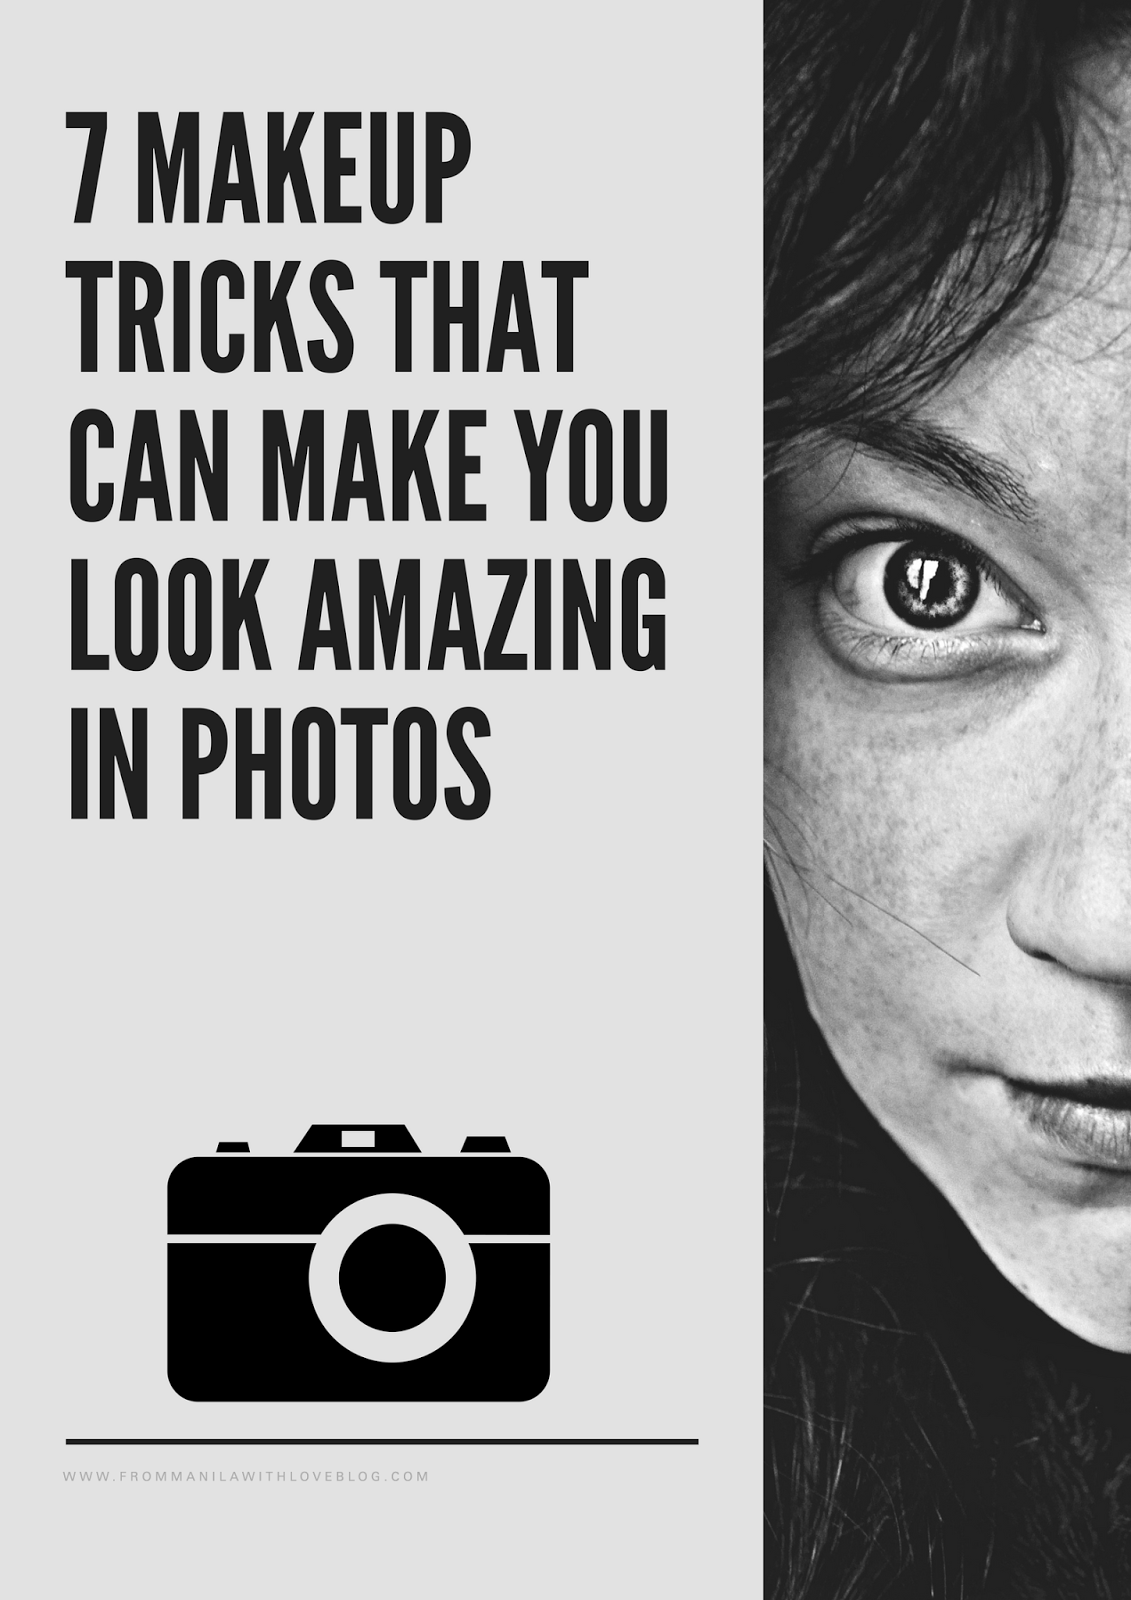 7 makeup tricks to make you look amazing in photos